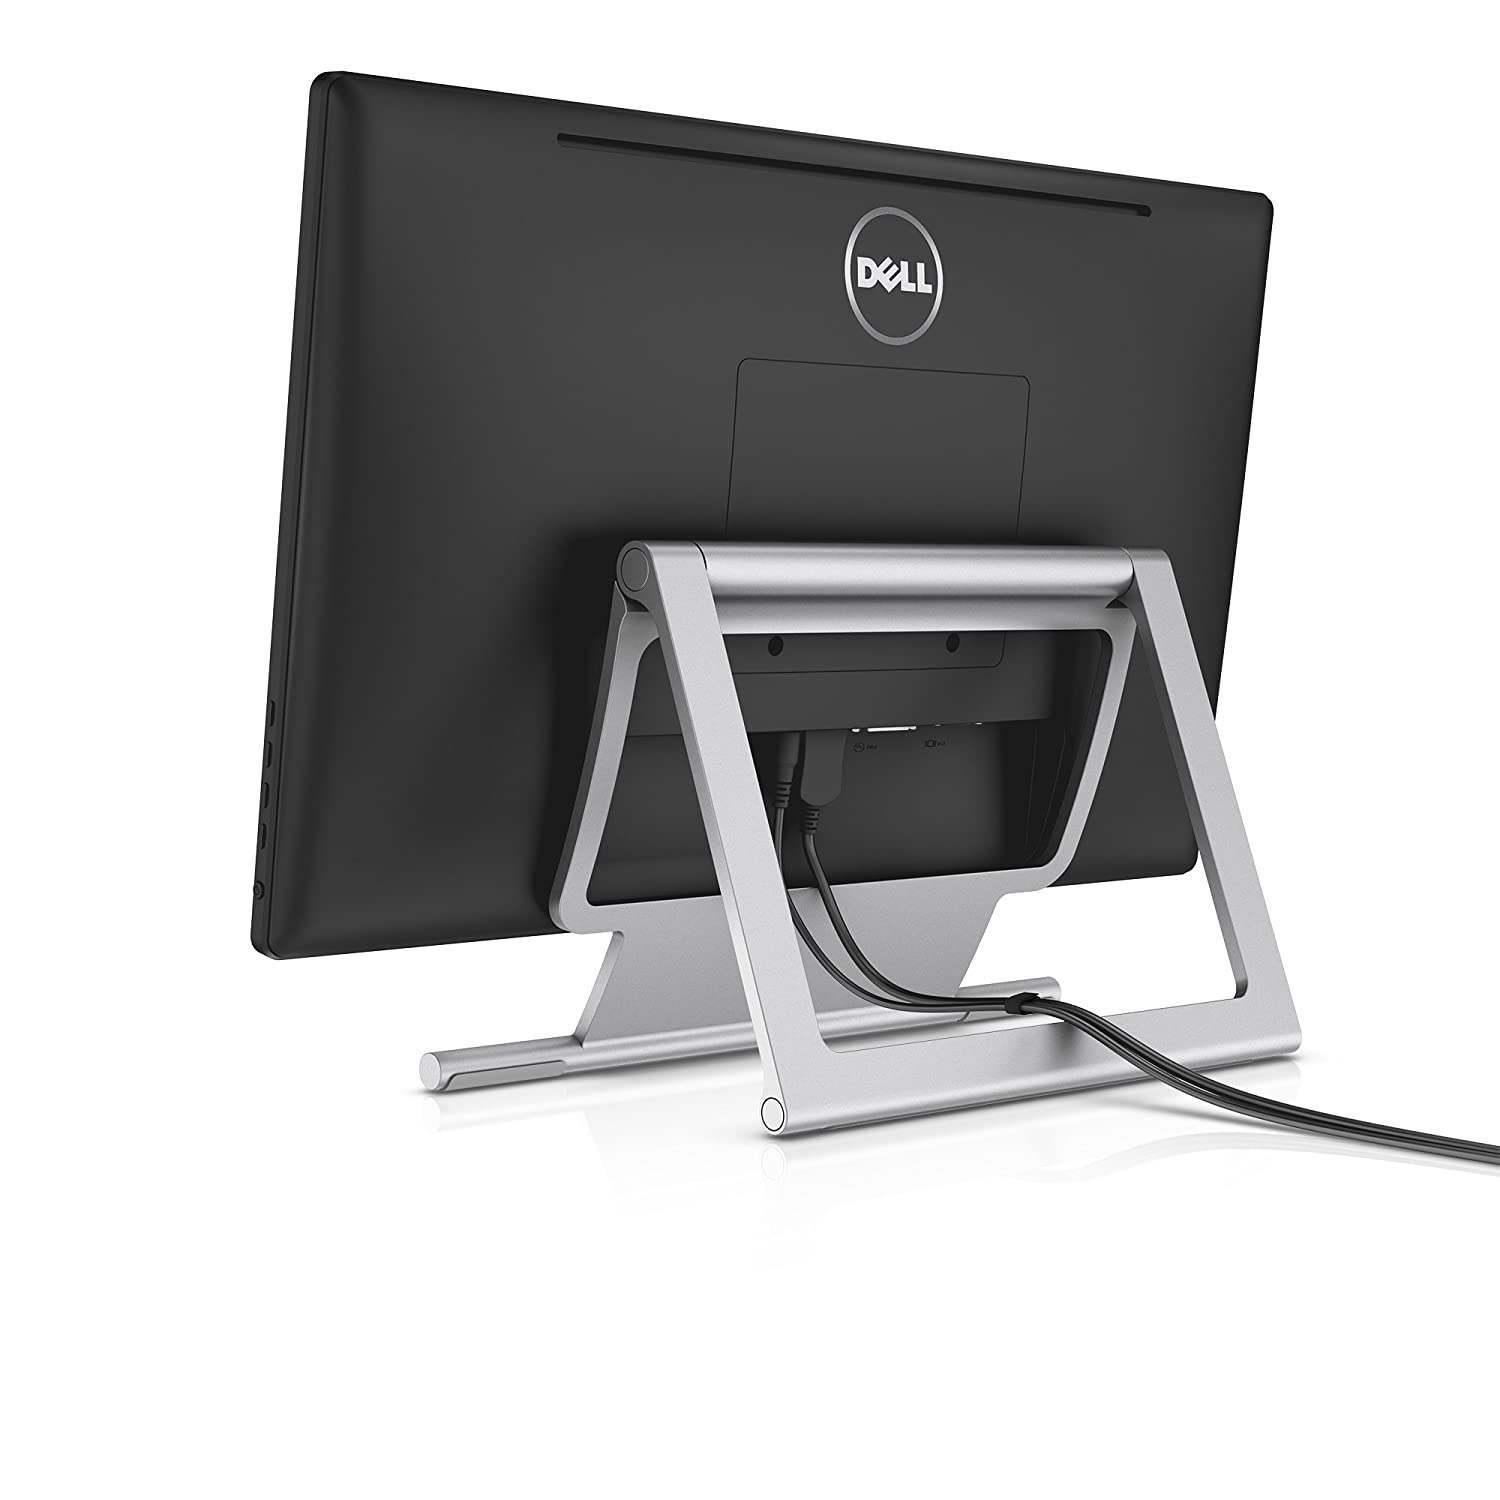 DELL S2240T DRIVERS FOR WINDOWS XP